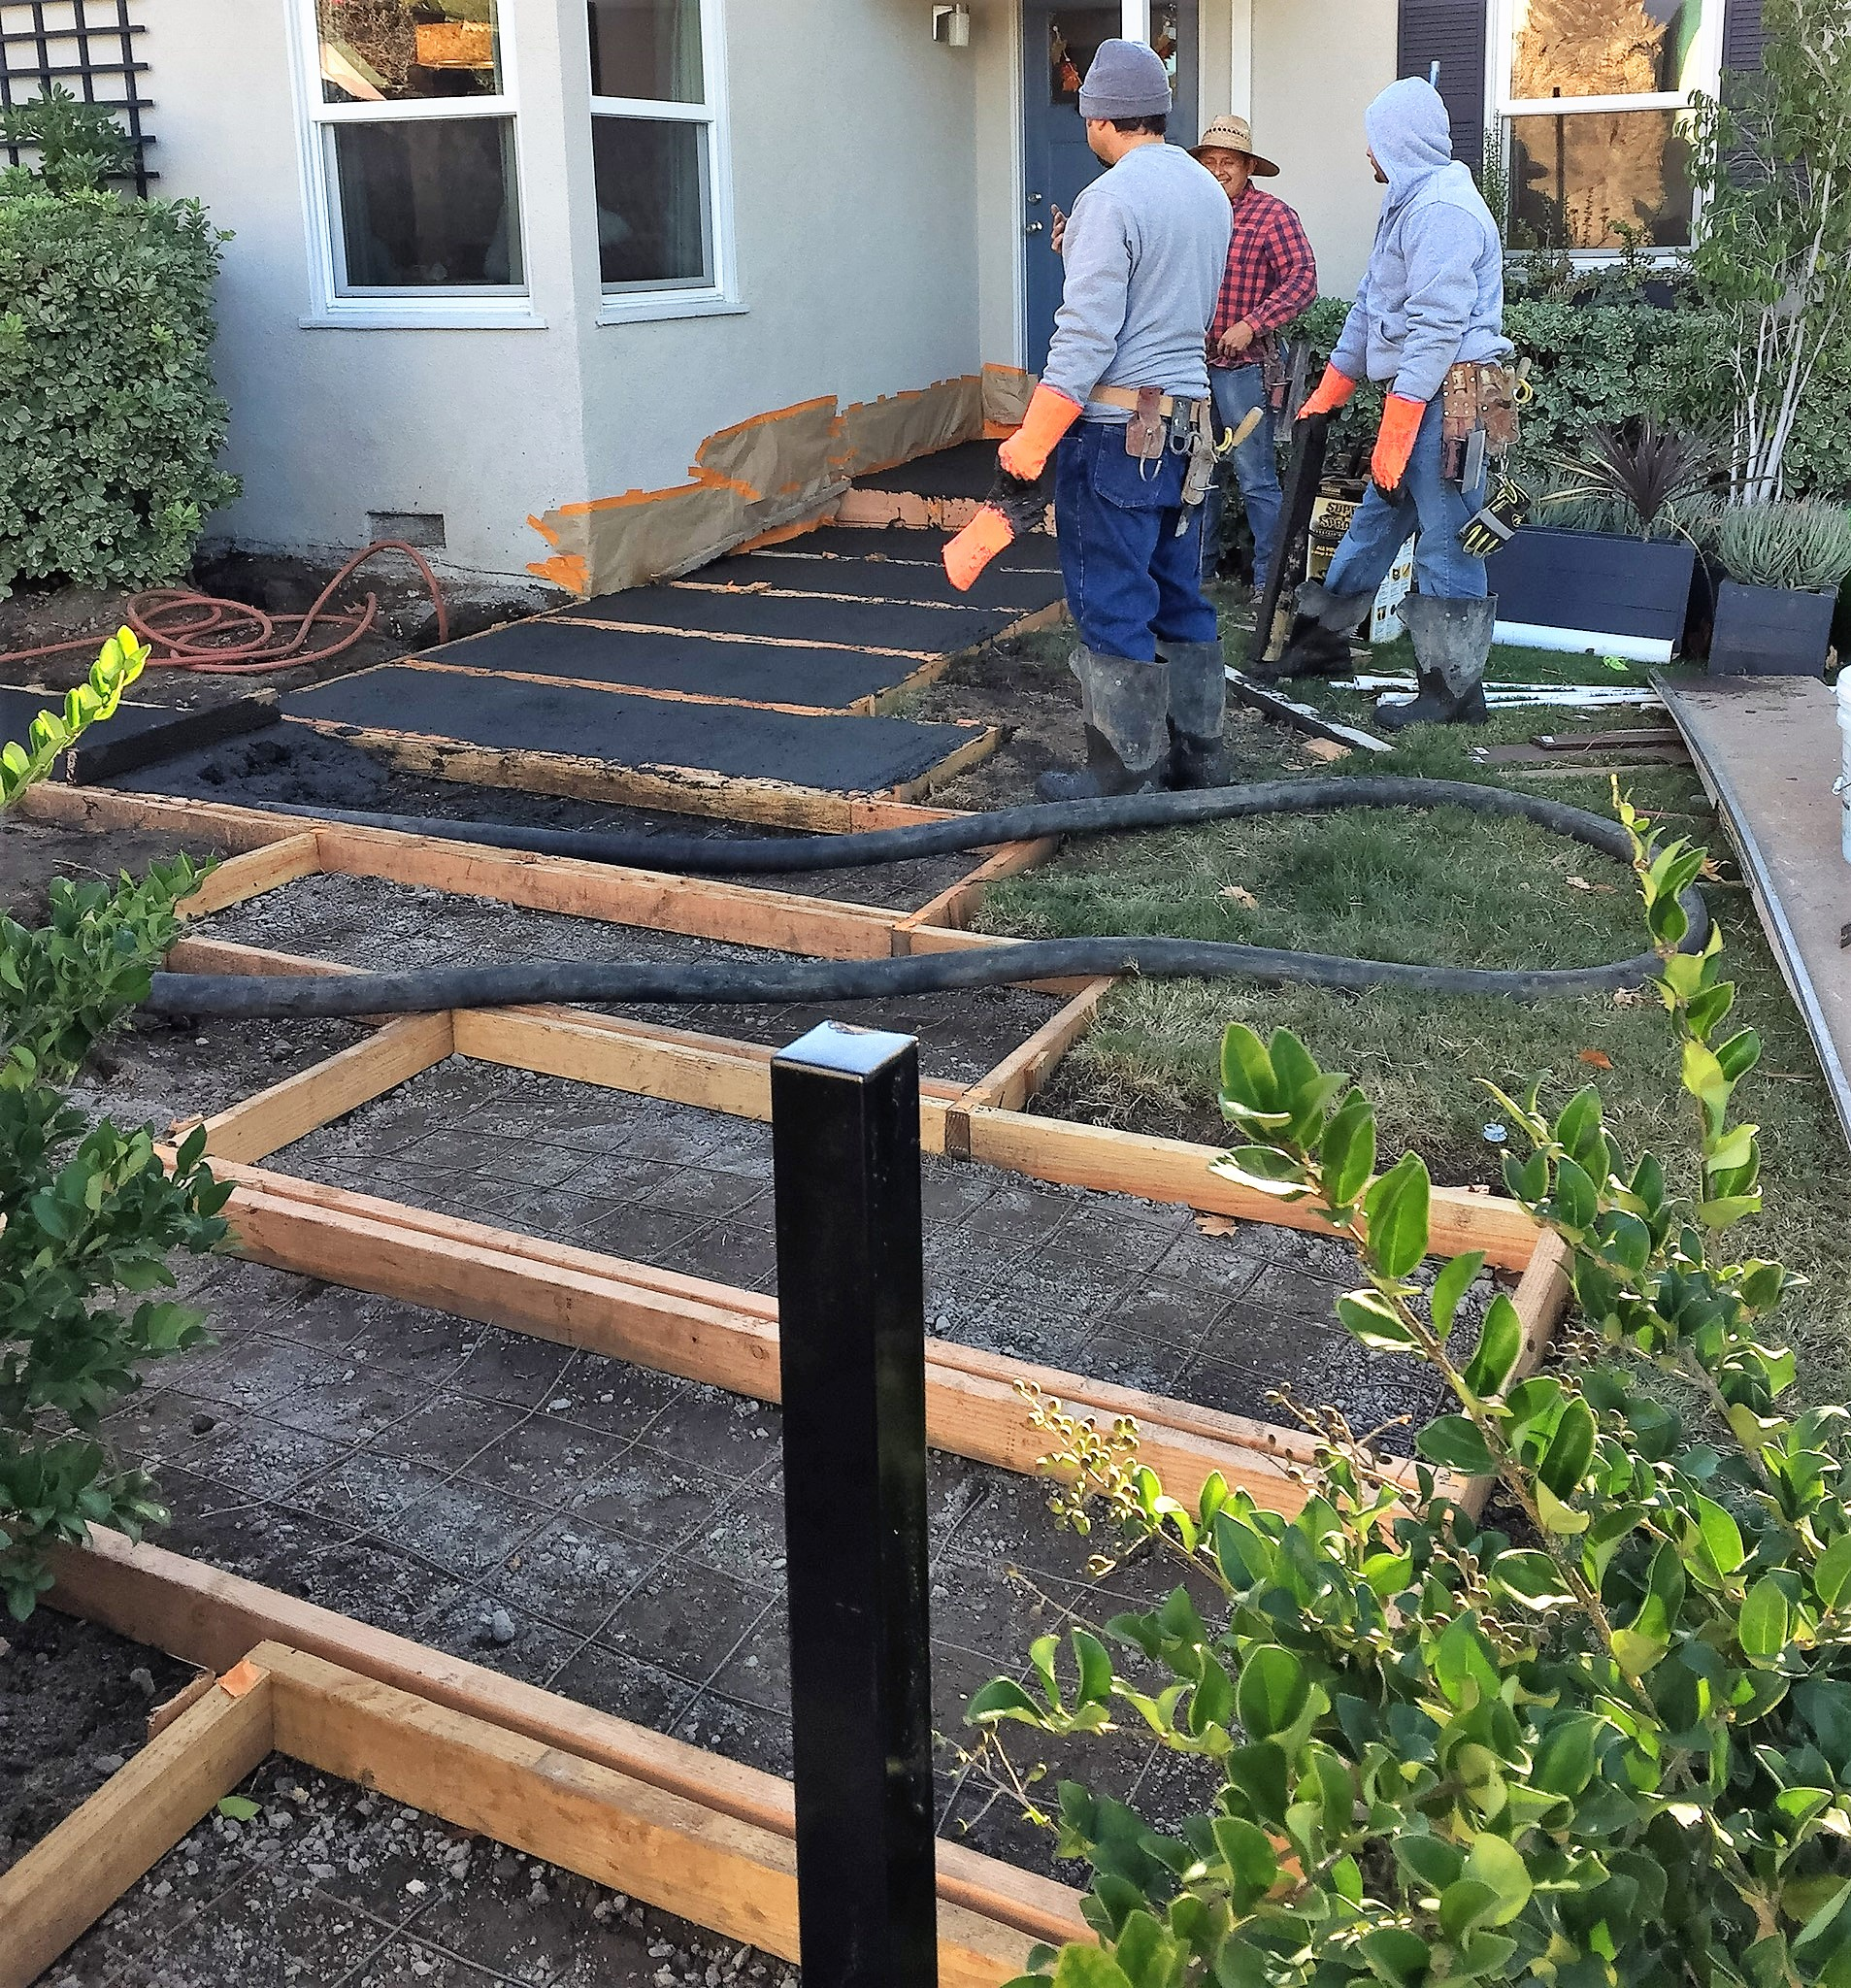 Ed's Landscaping cement walkway forms